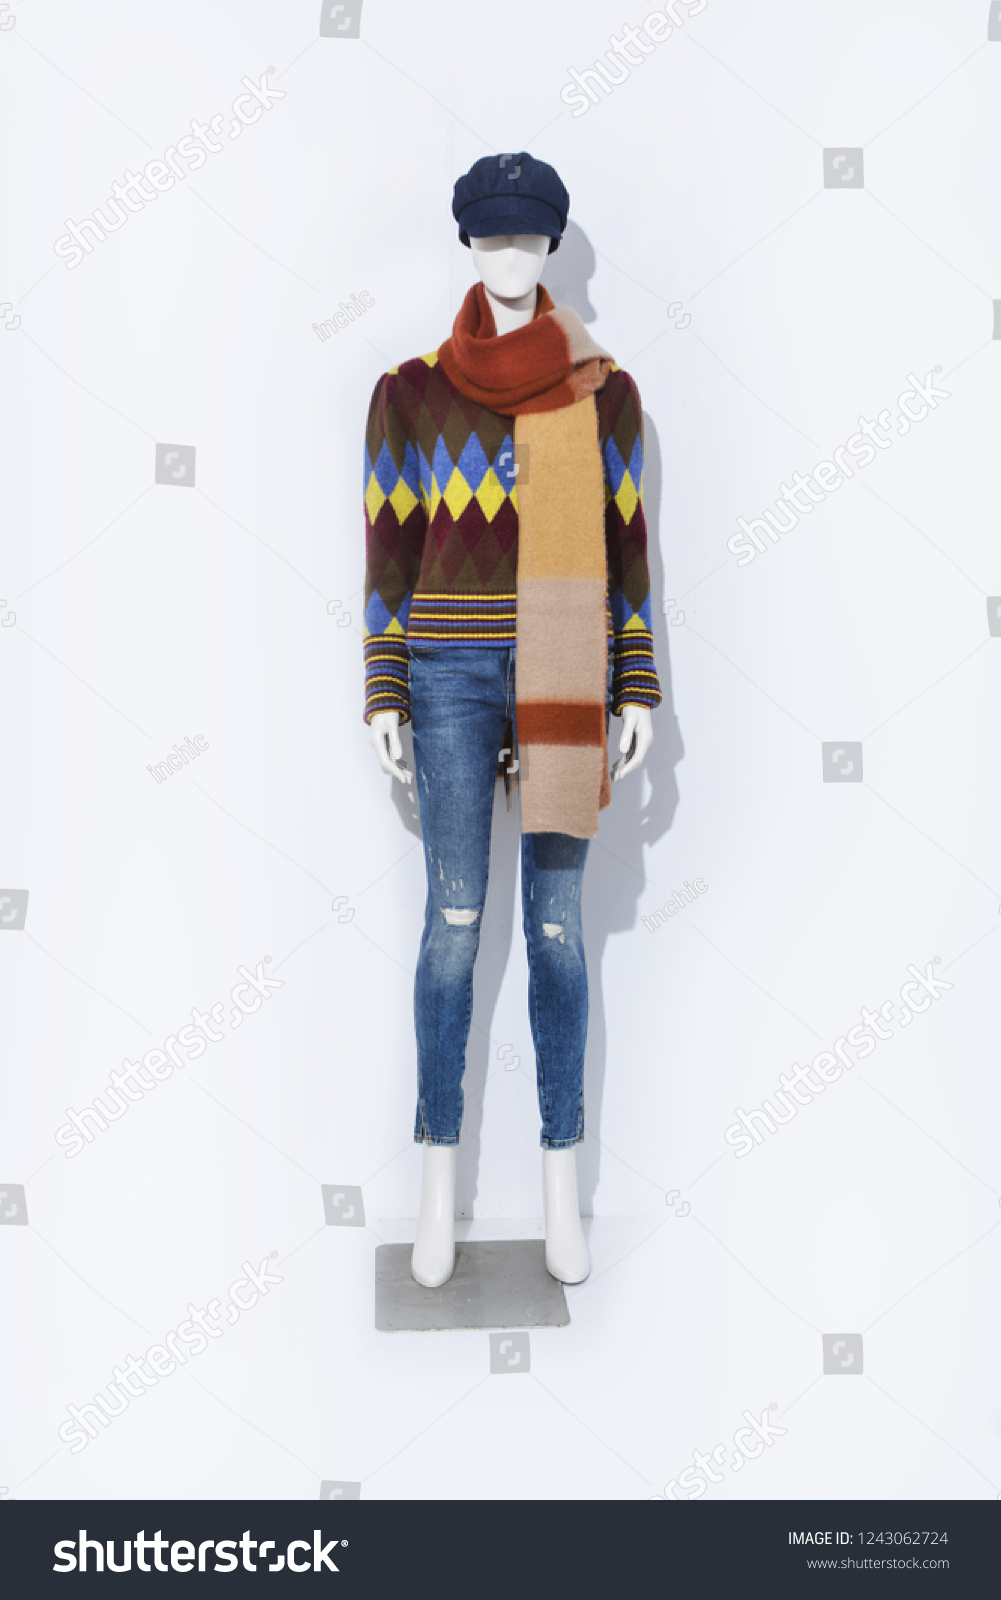 cf32abac5d1 Full Mannequin Female Checkered Sweater Stripy Stock Photo (Edit Now ...